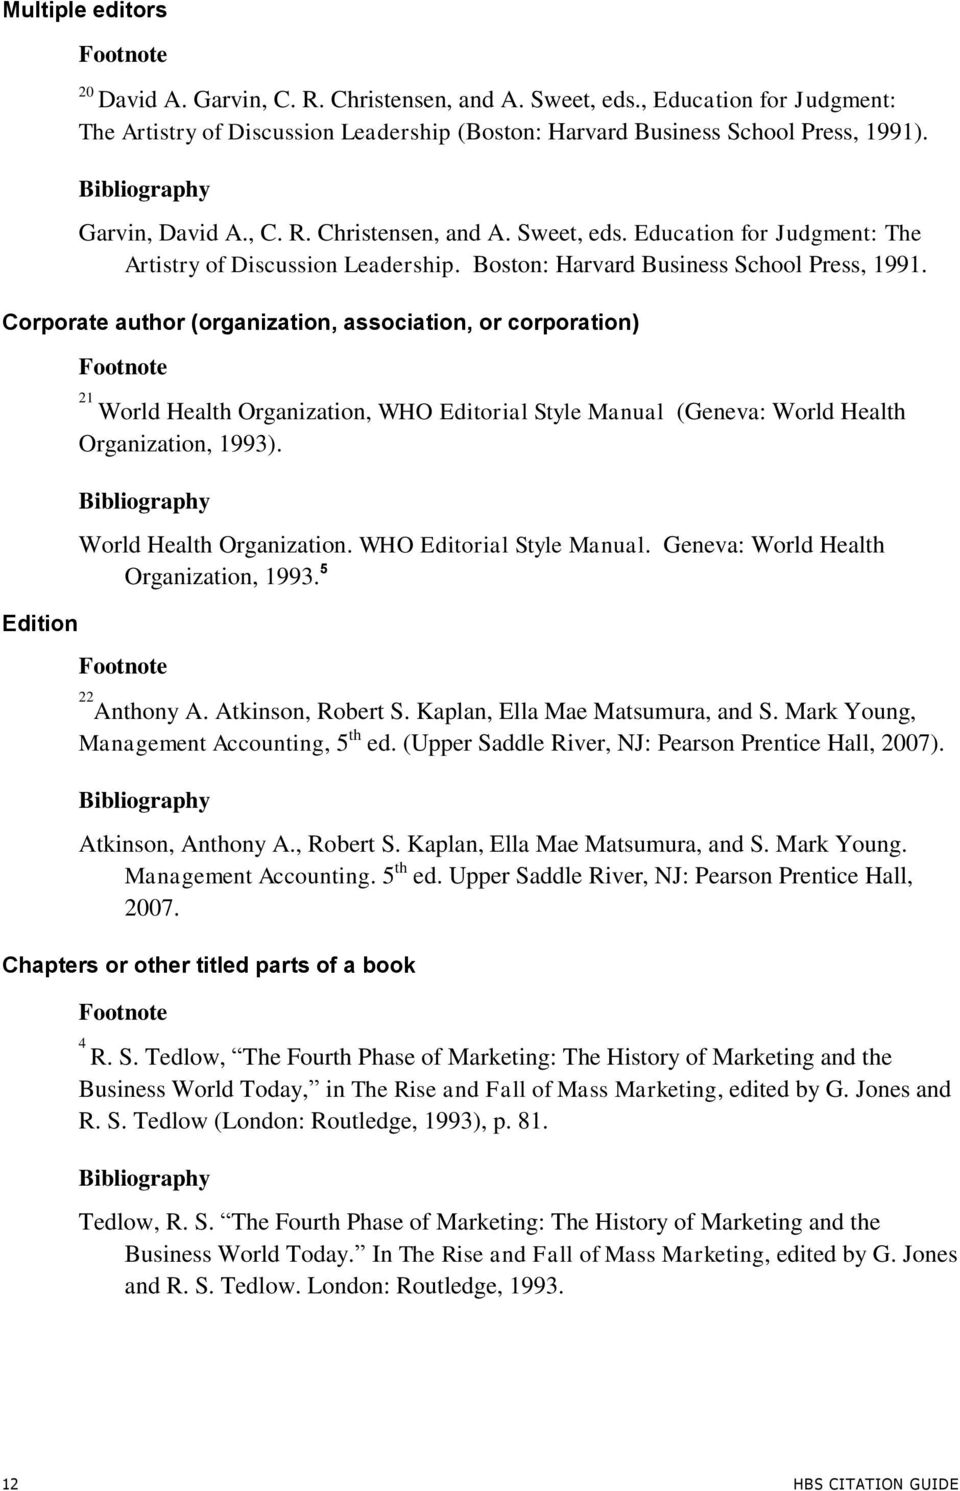 Corporate author (organization, association, or corporation) Edition 21 World Health Organization, WHO Editorial Style Manual (Geneva: World Health Organization, 1993). World Health Organization. WHO Editorial Style Manual. Geneva: World Health Organization, 1993.